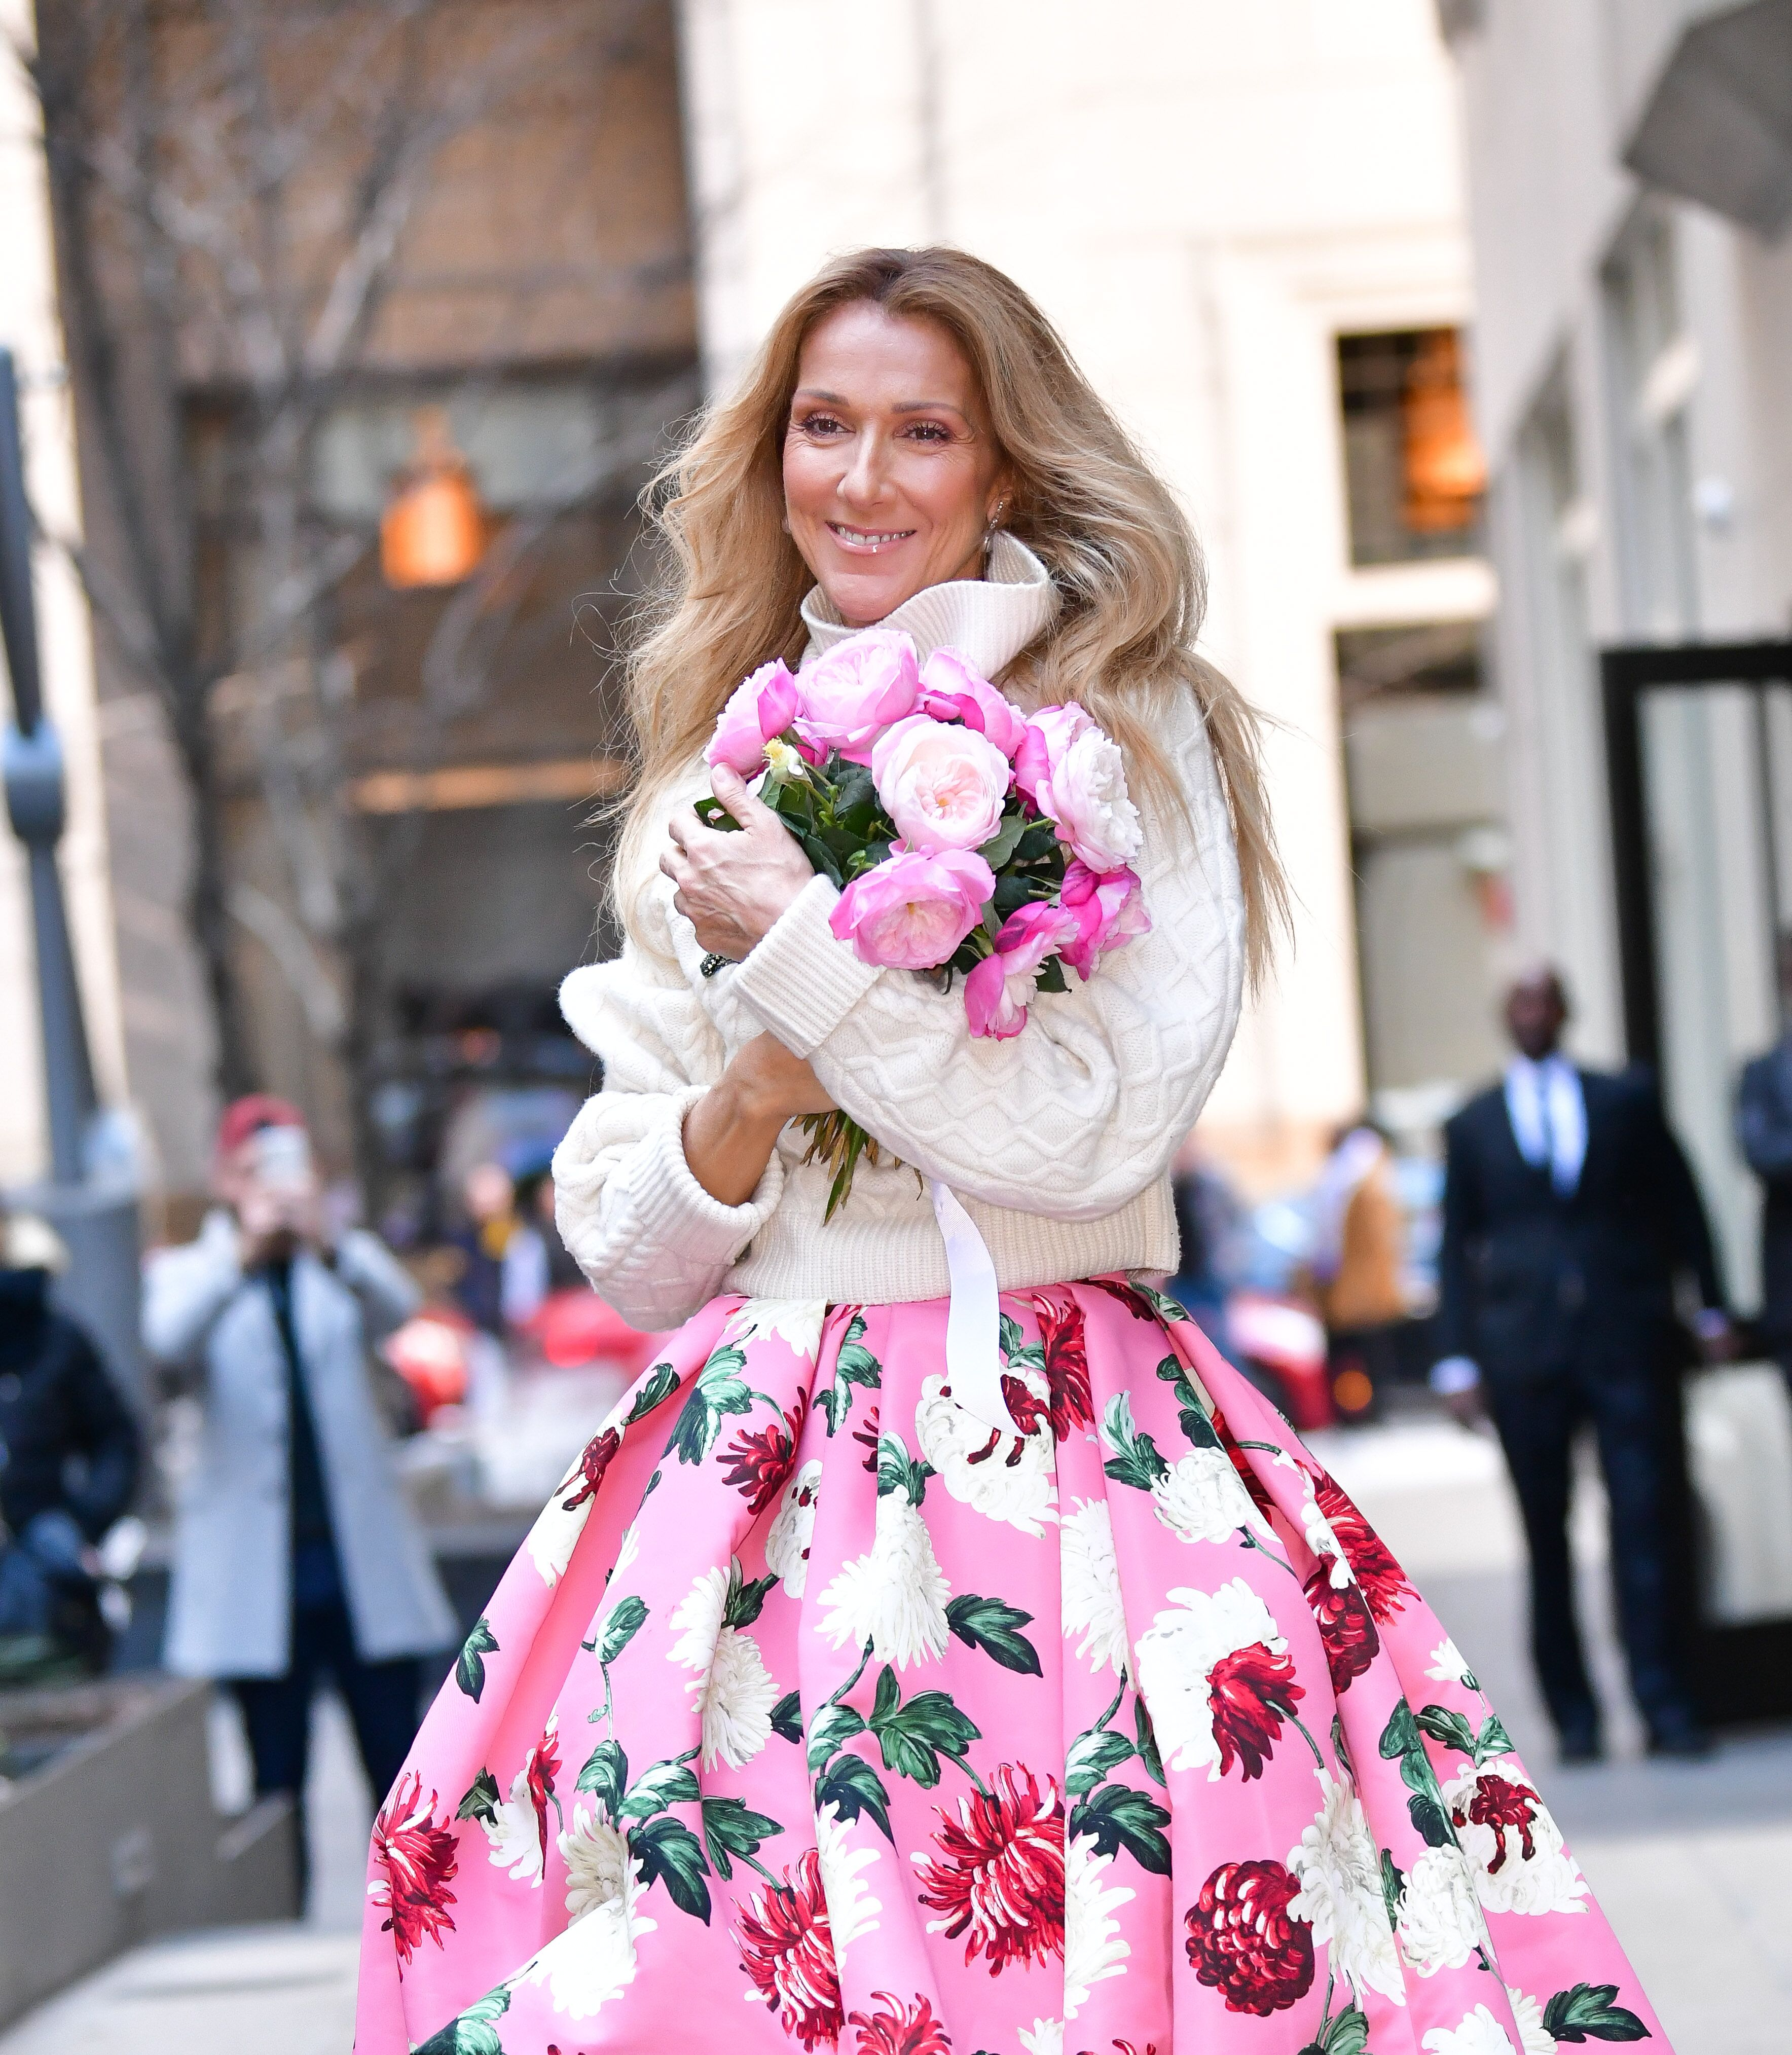 Celine Dion seen on the streets of Lower Manhattan on March 8, 2020 | Photo: Getty Images